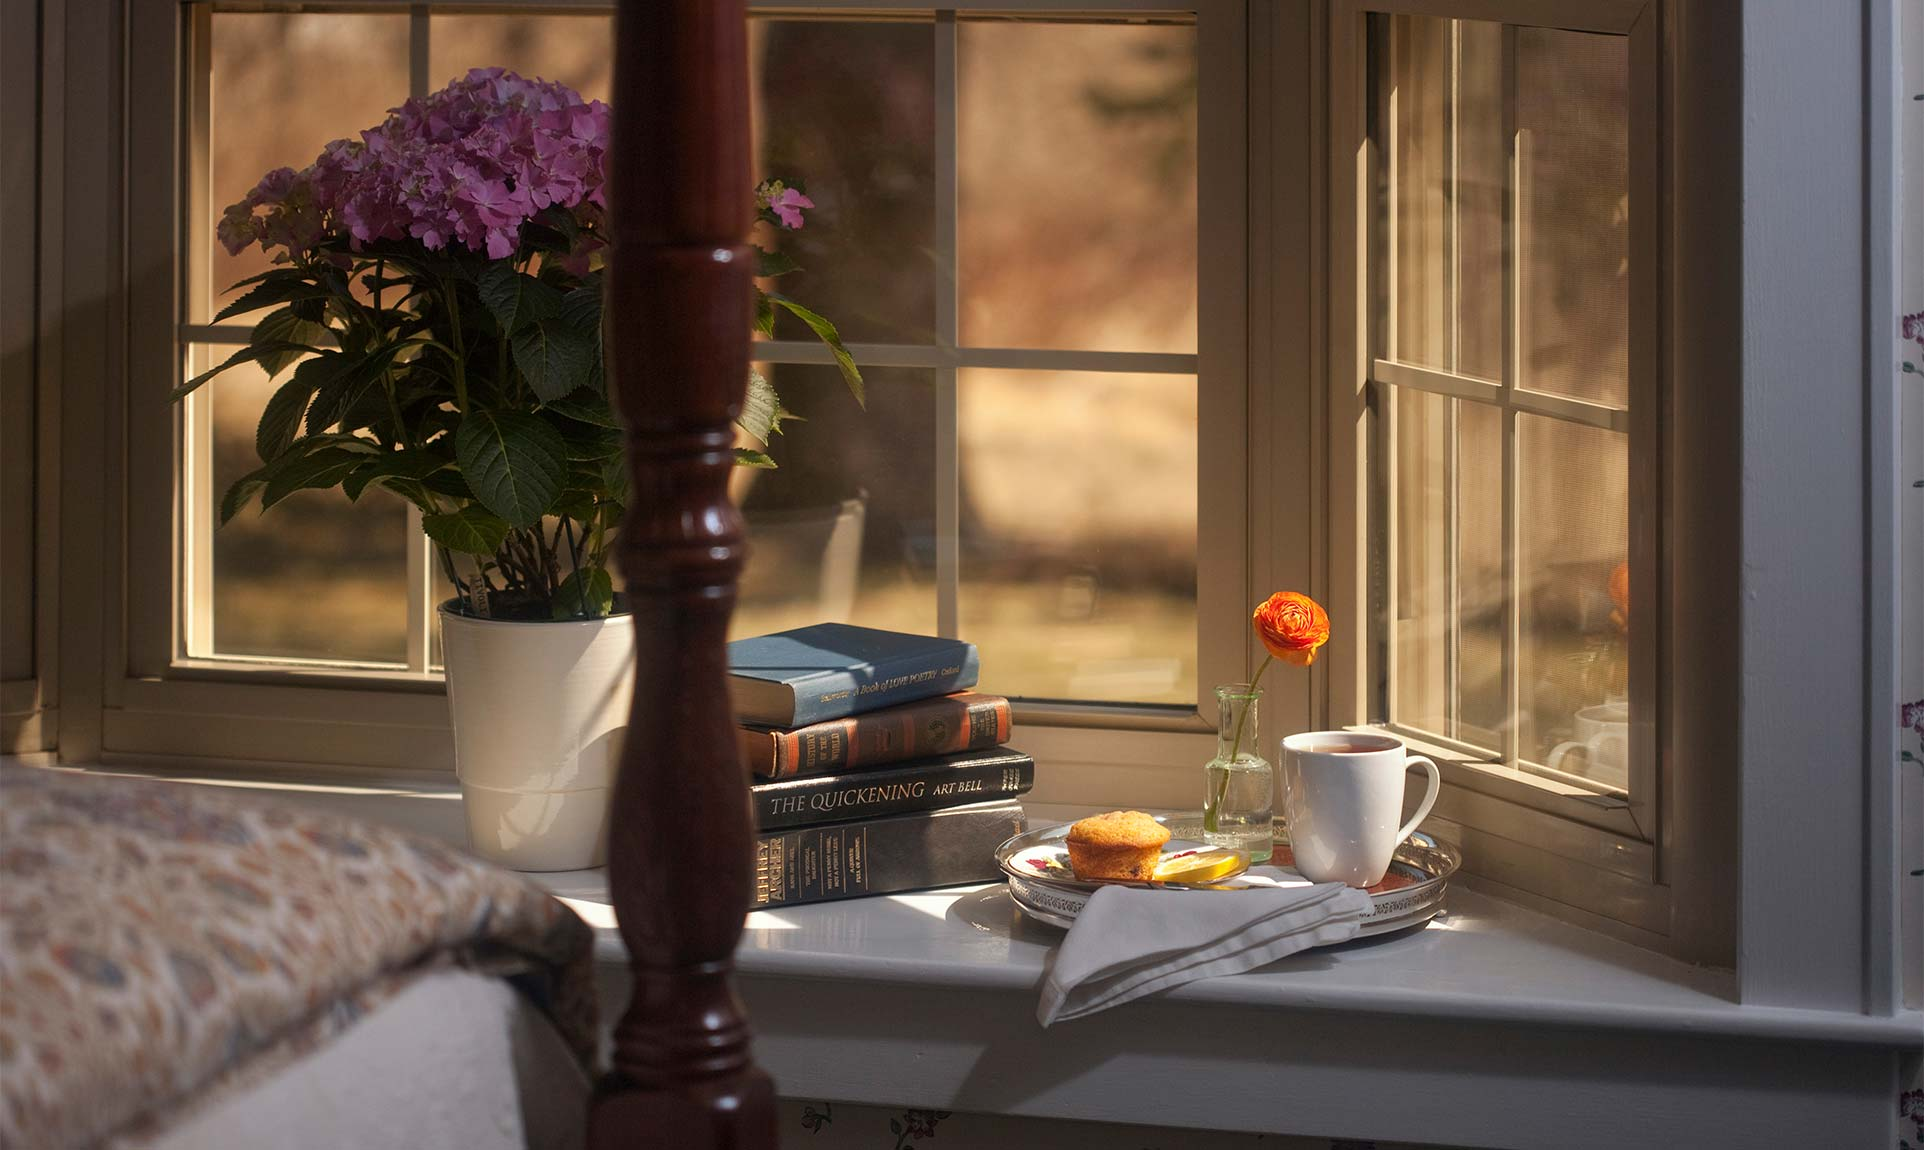 Bay window with books and flowers in a vase.